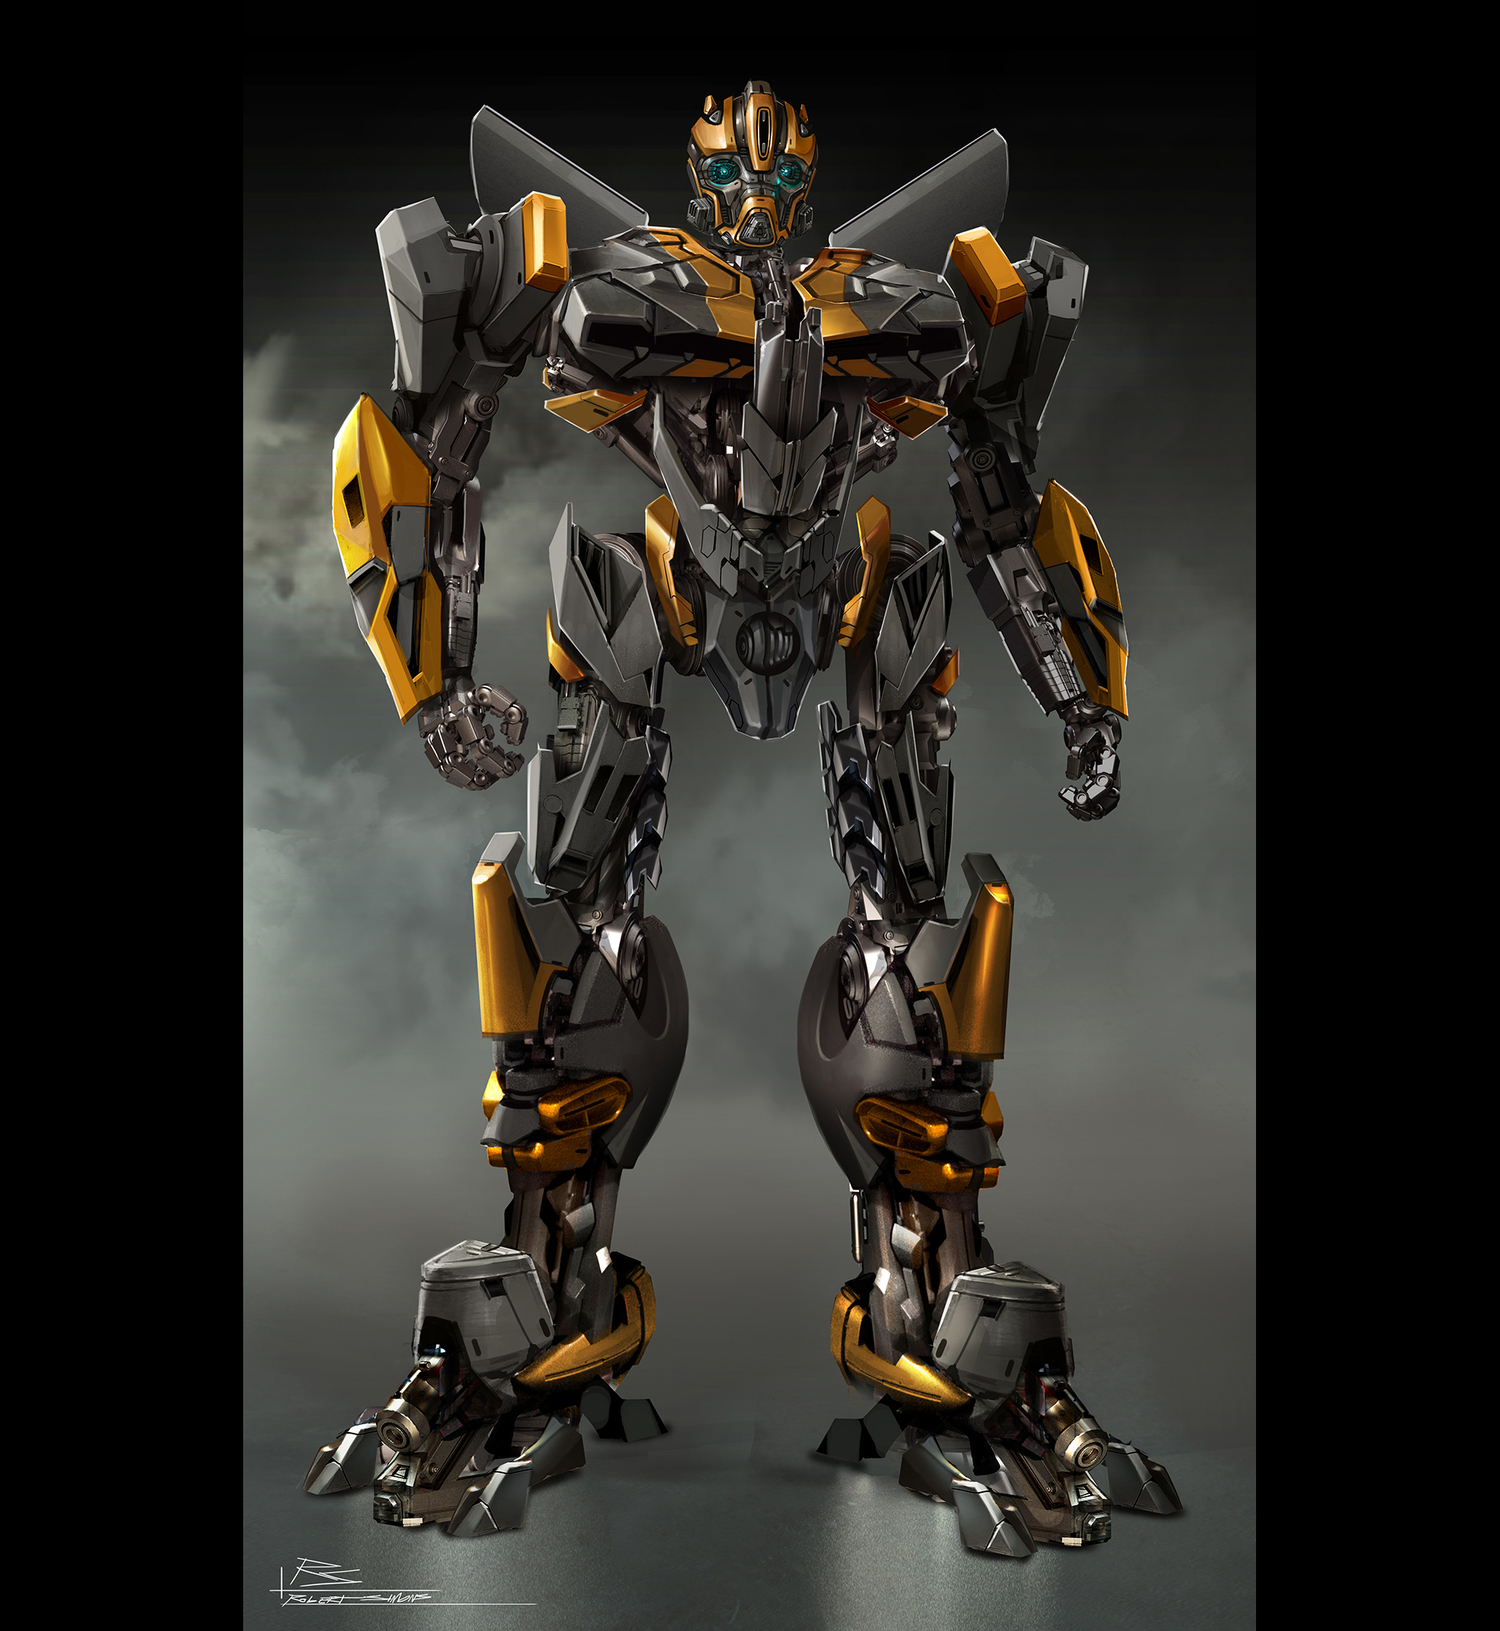 Drawn bumblebee transformers movie And more! autobots  Simons